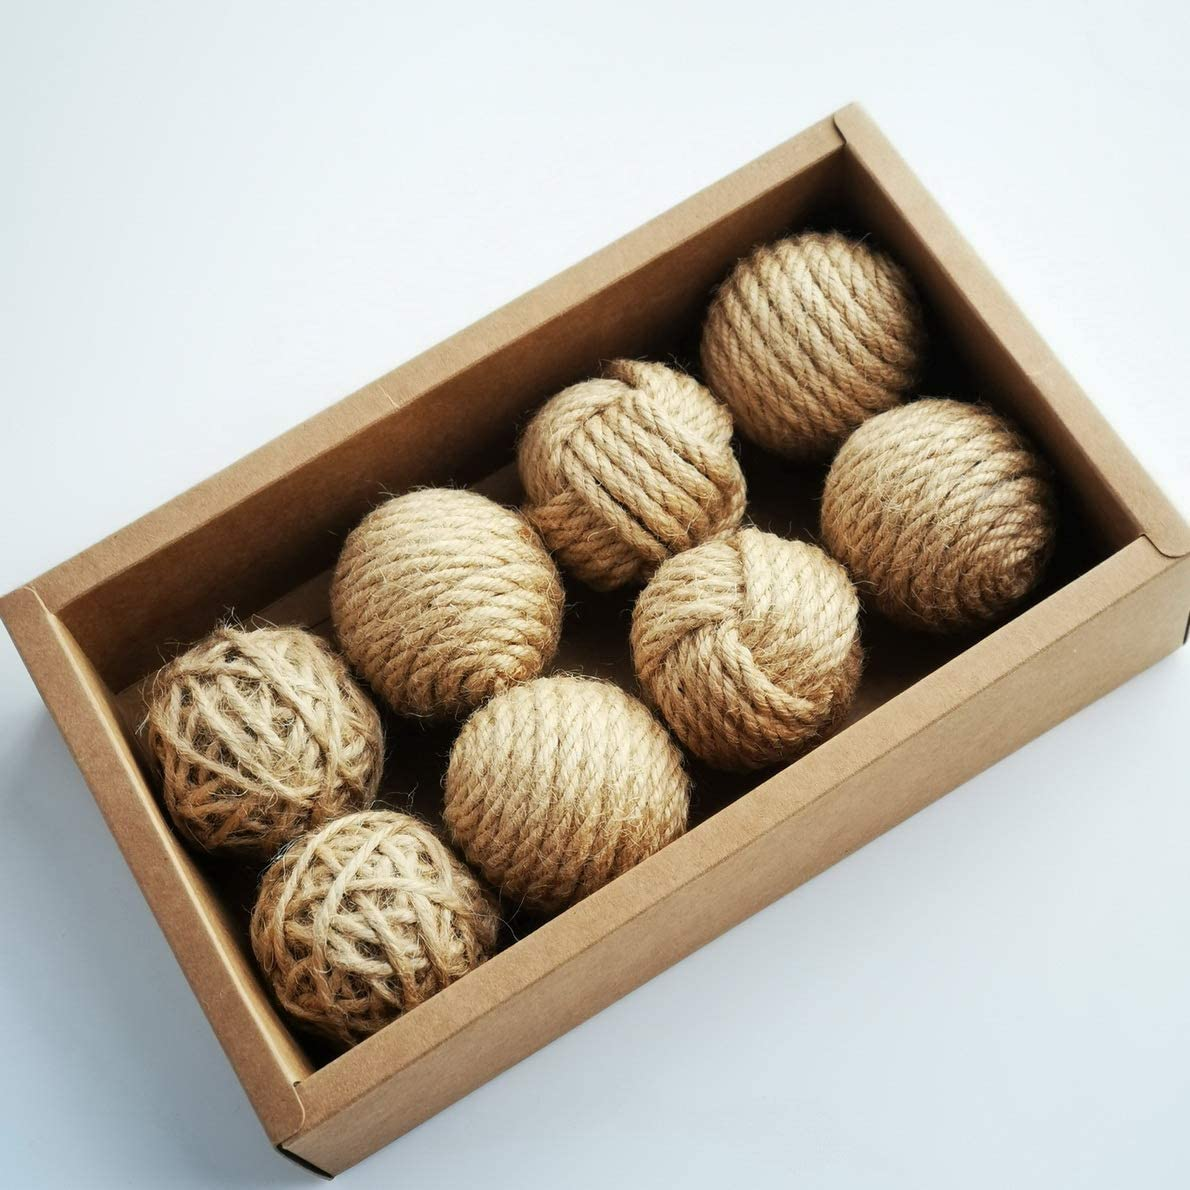 Set of 8 orb Bowl fillers Decor Party Decorations Rustic Jute Rope Balls for Home